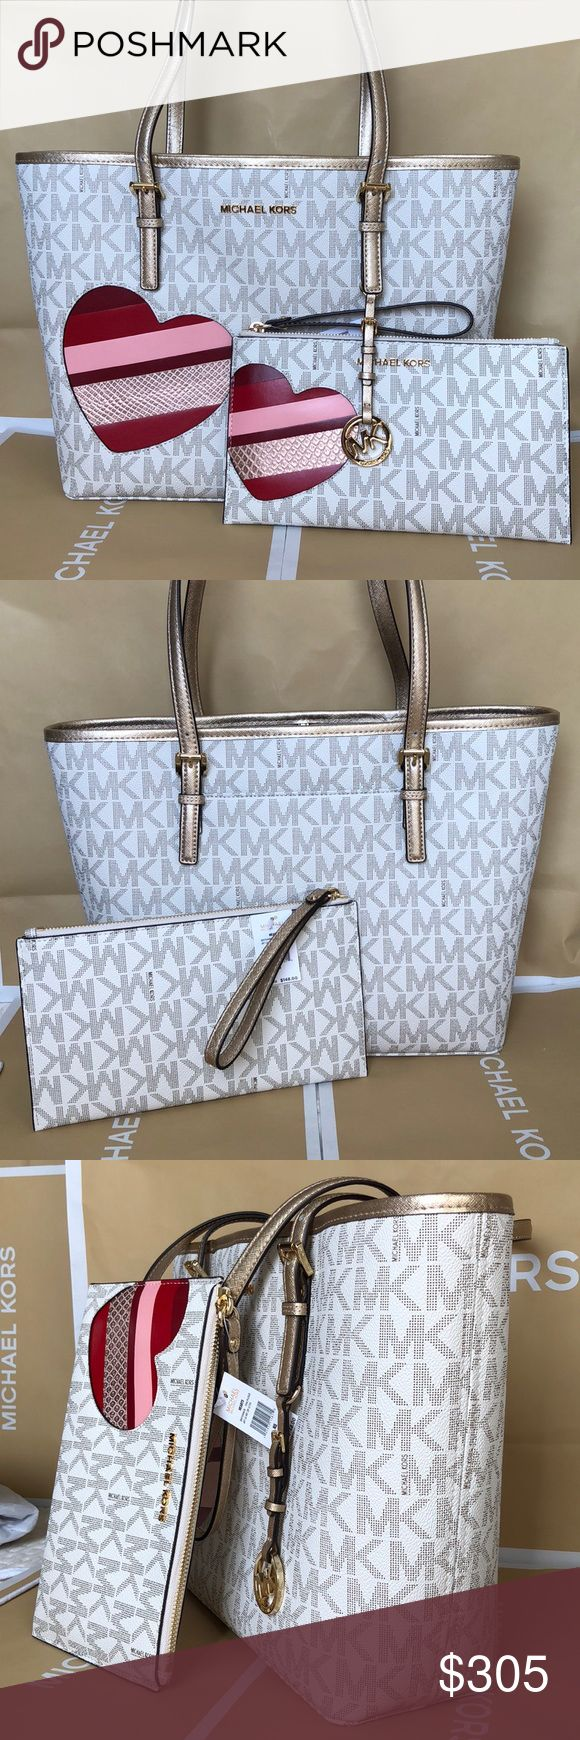 Michael Kors Set 100% Authentic Michael Kors Tote Bag and Large Clutch, brand new with tag! Michael Kors Bags Totes